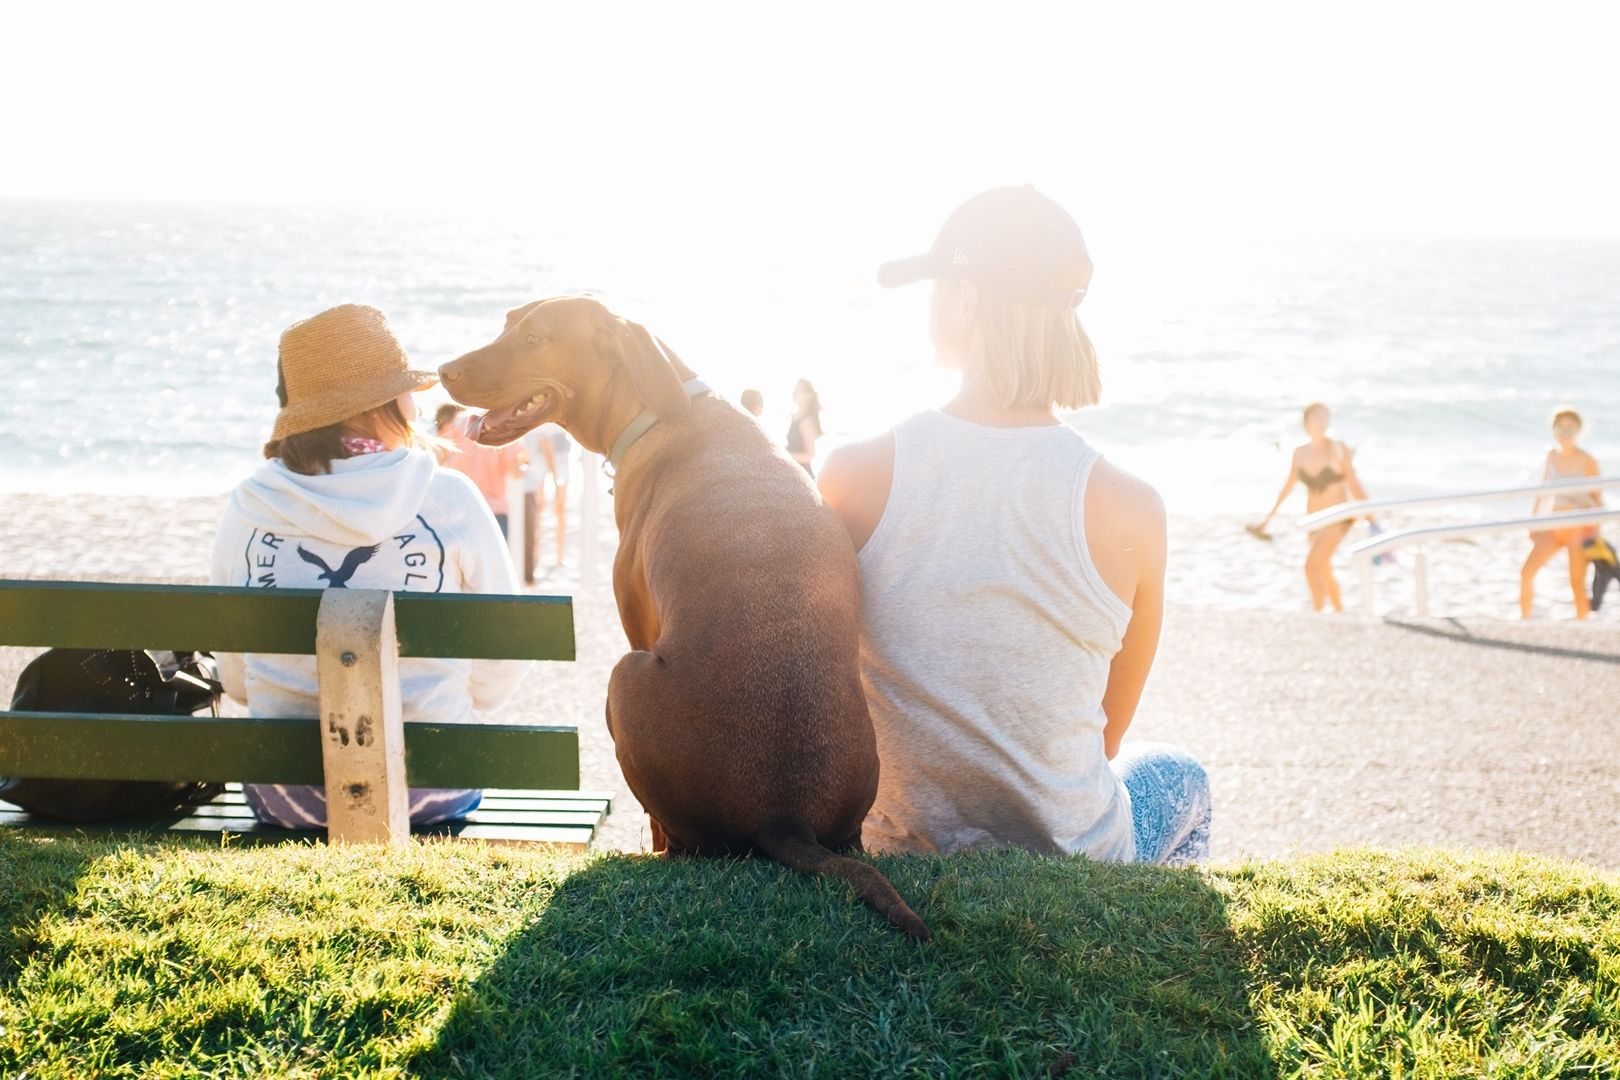 6 Tips For Picking Up Women At The Dog Park